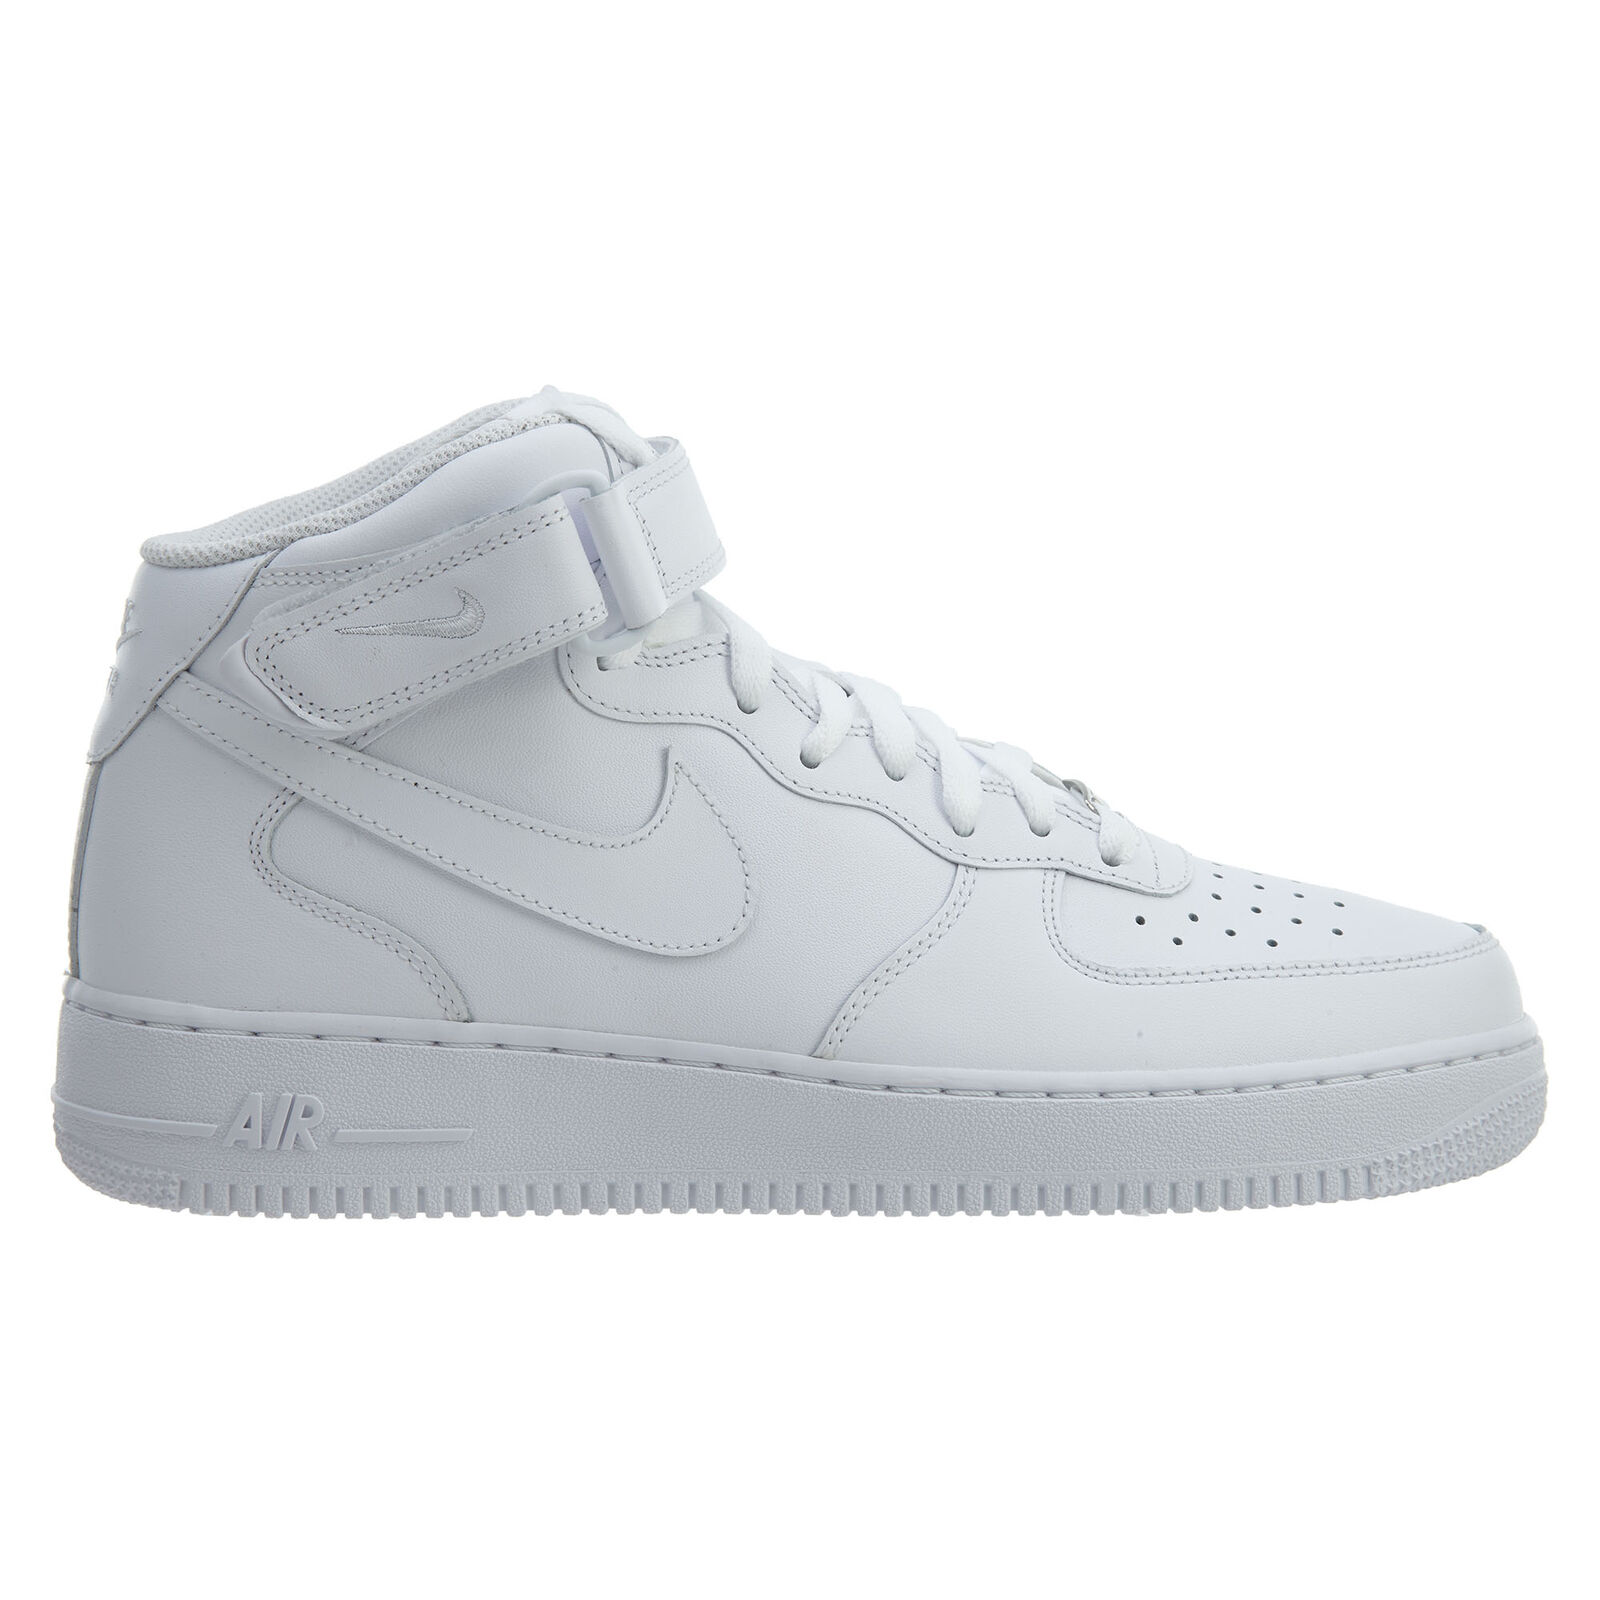 Nike Air Force 1 Mid '07 Mens 315123-111 White Leather Athletic shoes Size 9